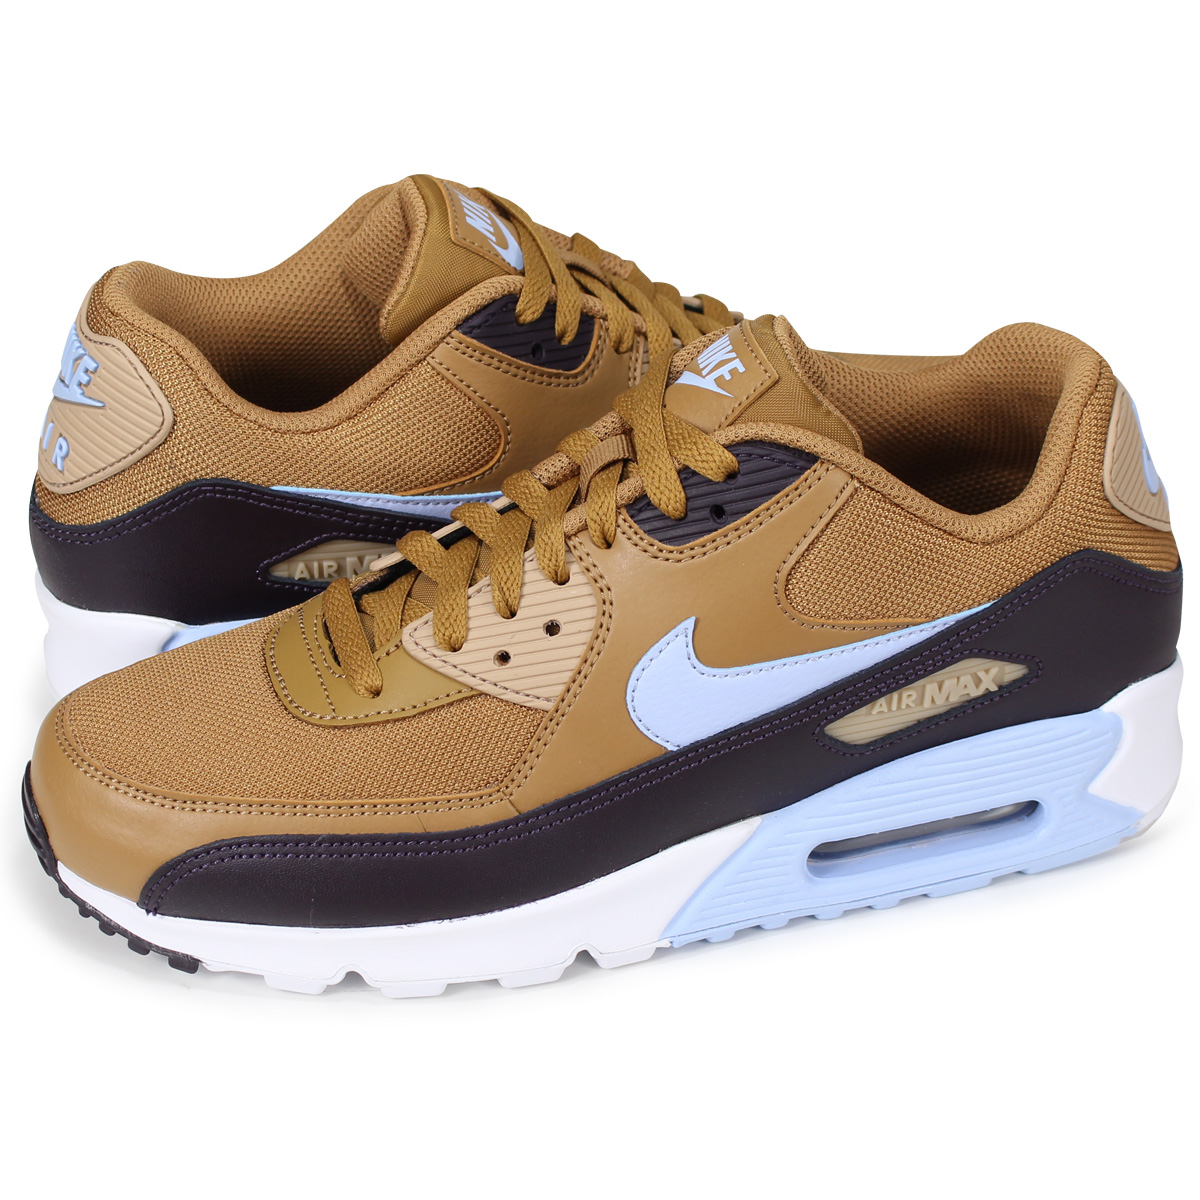 air max 90 essential men